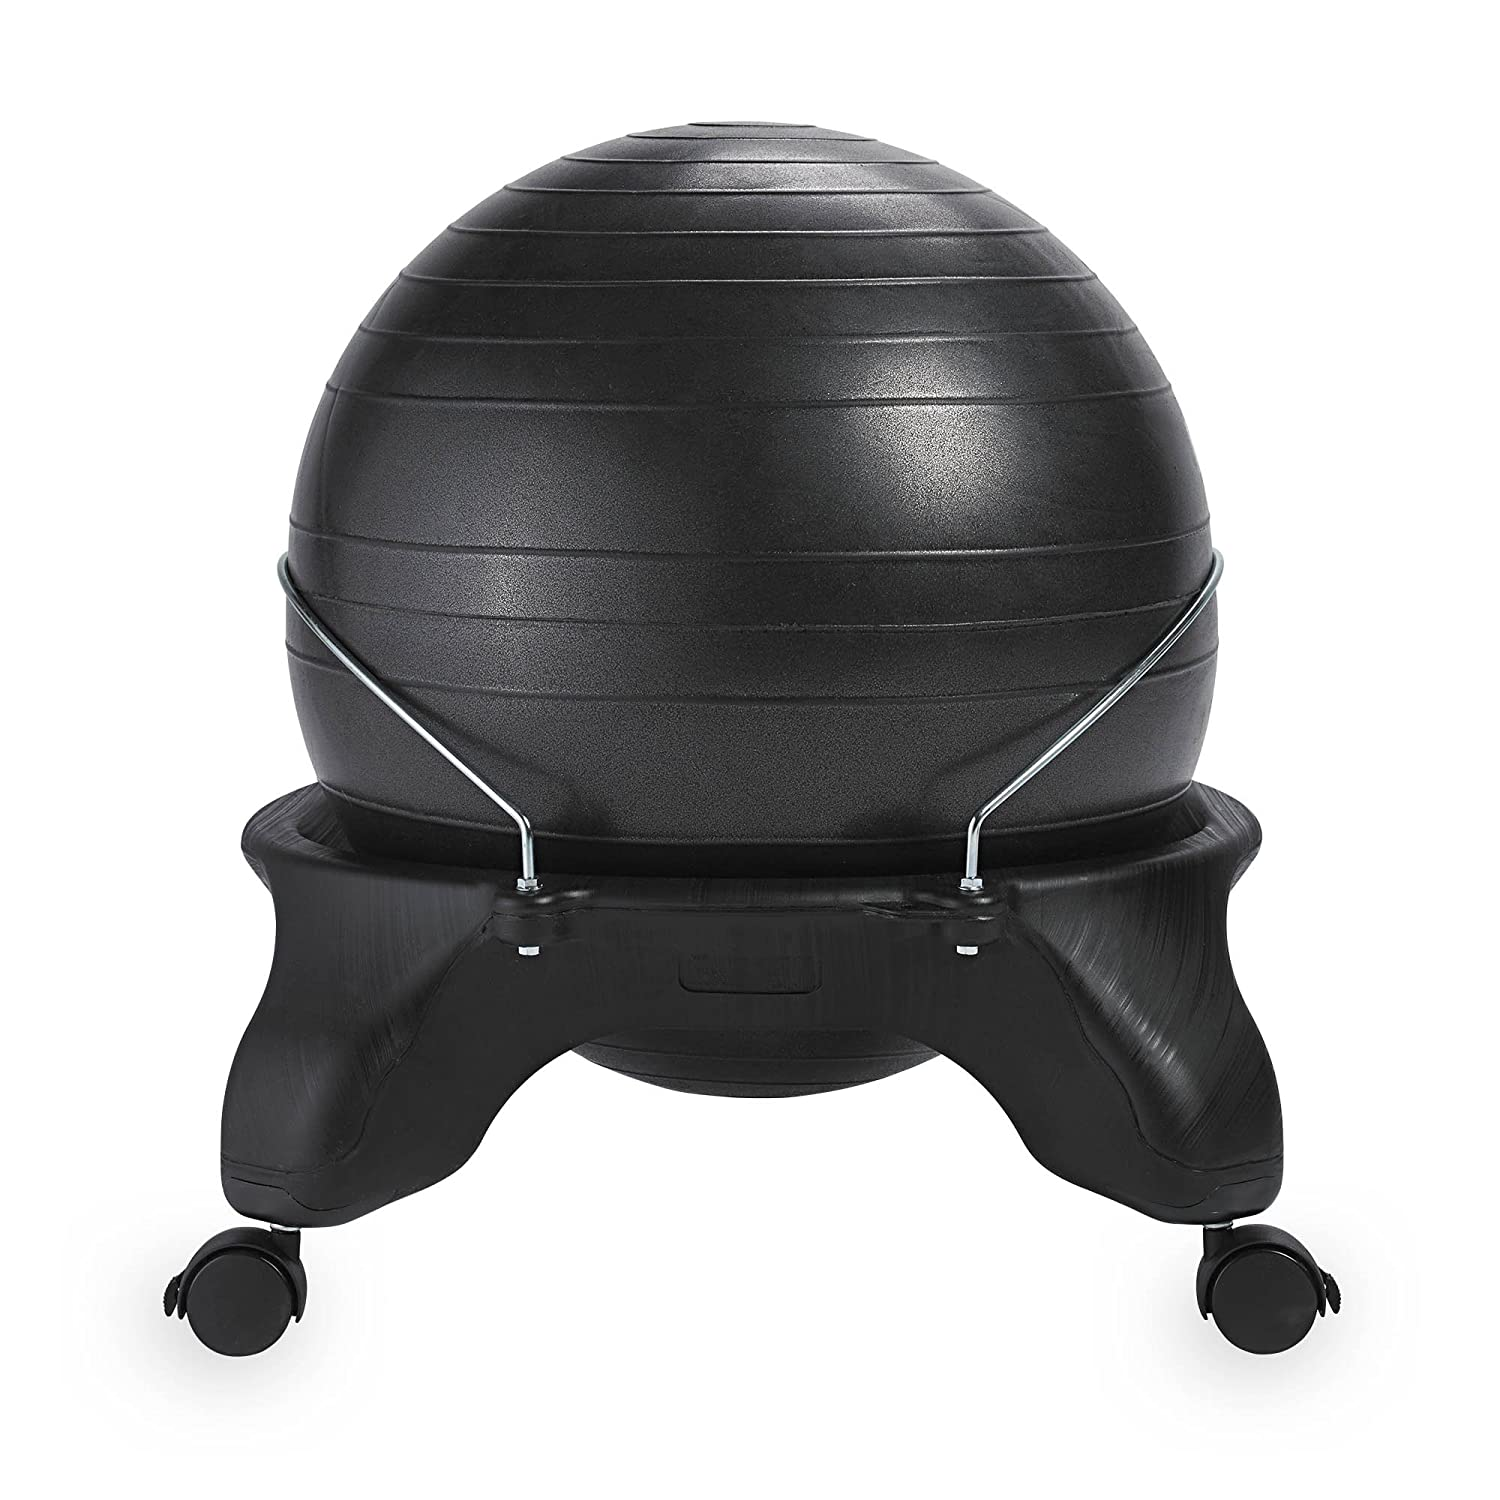 Surprising Gaiam Classic Backless Balance Ball Chair Exercise Stability Yoga Ball Premium Ergonomic Chair For Home And Office Desk With Air Pump Exercise Download Free Architecture Designs Ferenbritishbridgeorg